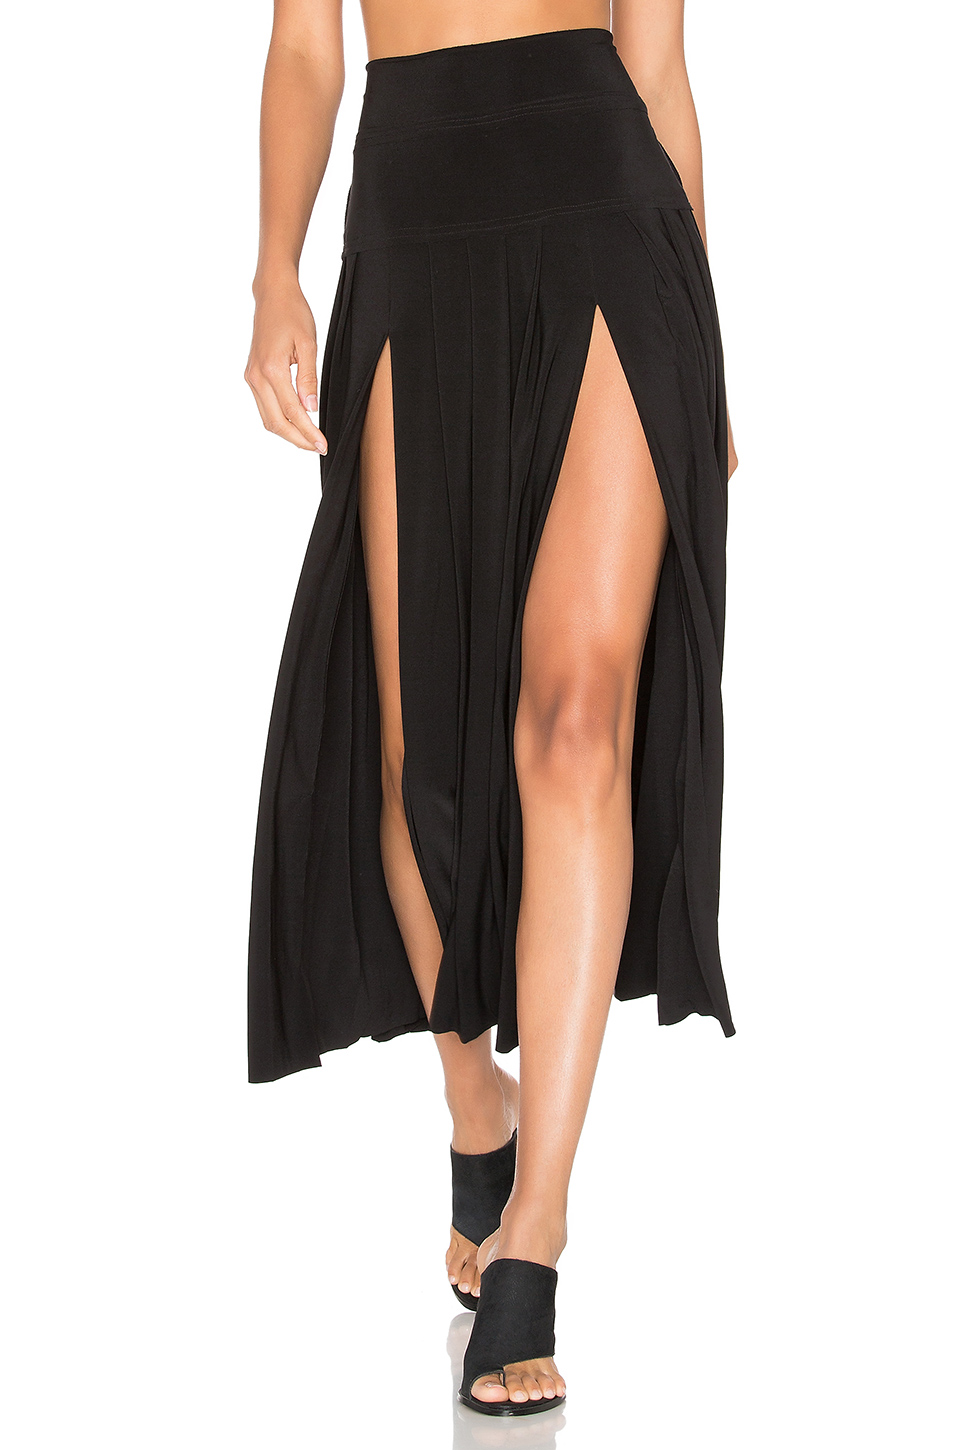 NORMA KAMALI BLACK PLEATED SKIRT WITH SLITS